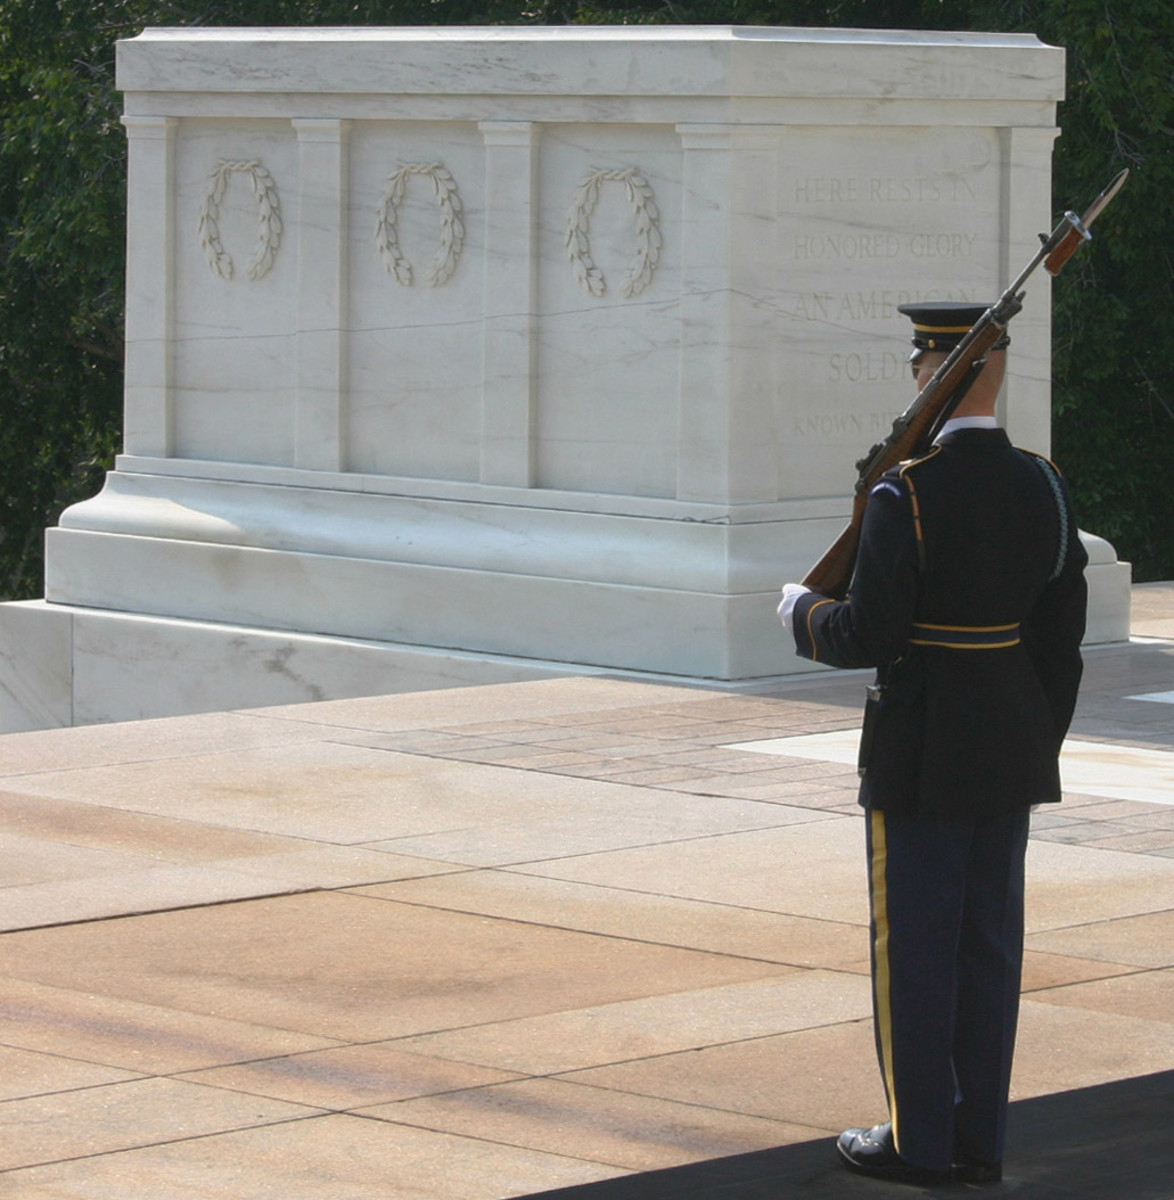 Ornamental stone, like this marble carving at the Tomb of the Unknown Soldier, can be elaborate or simple, but is generally found with retail and specially ordered products.